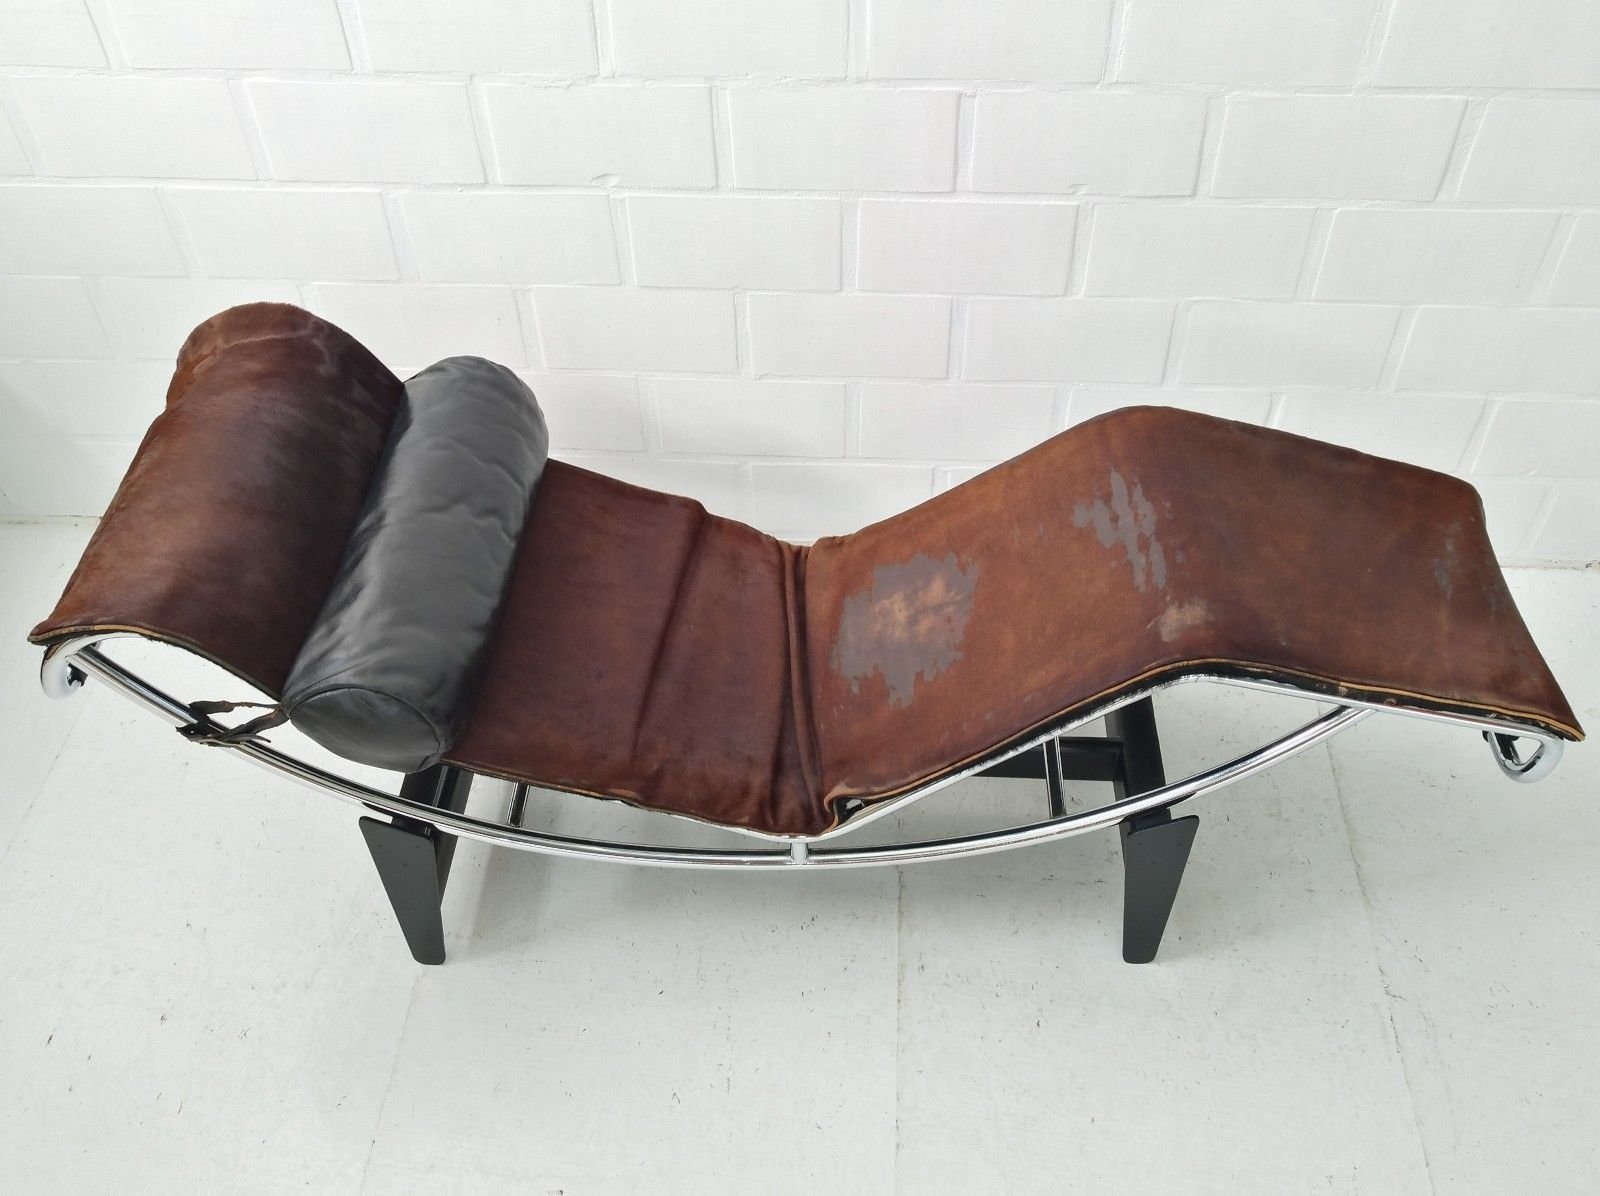 Lc4 chaise longue by le corbusier charlotte perriand for Chaise lounge cassina